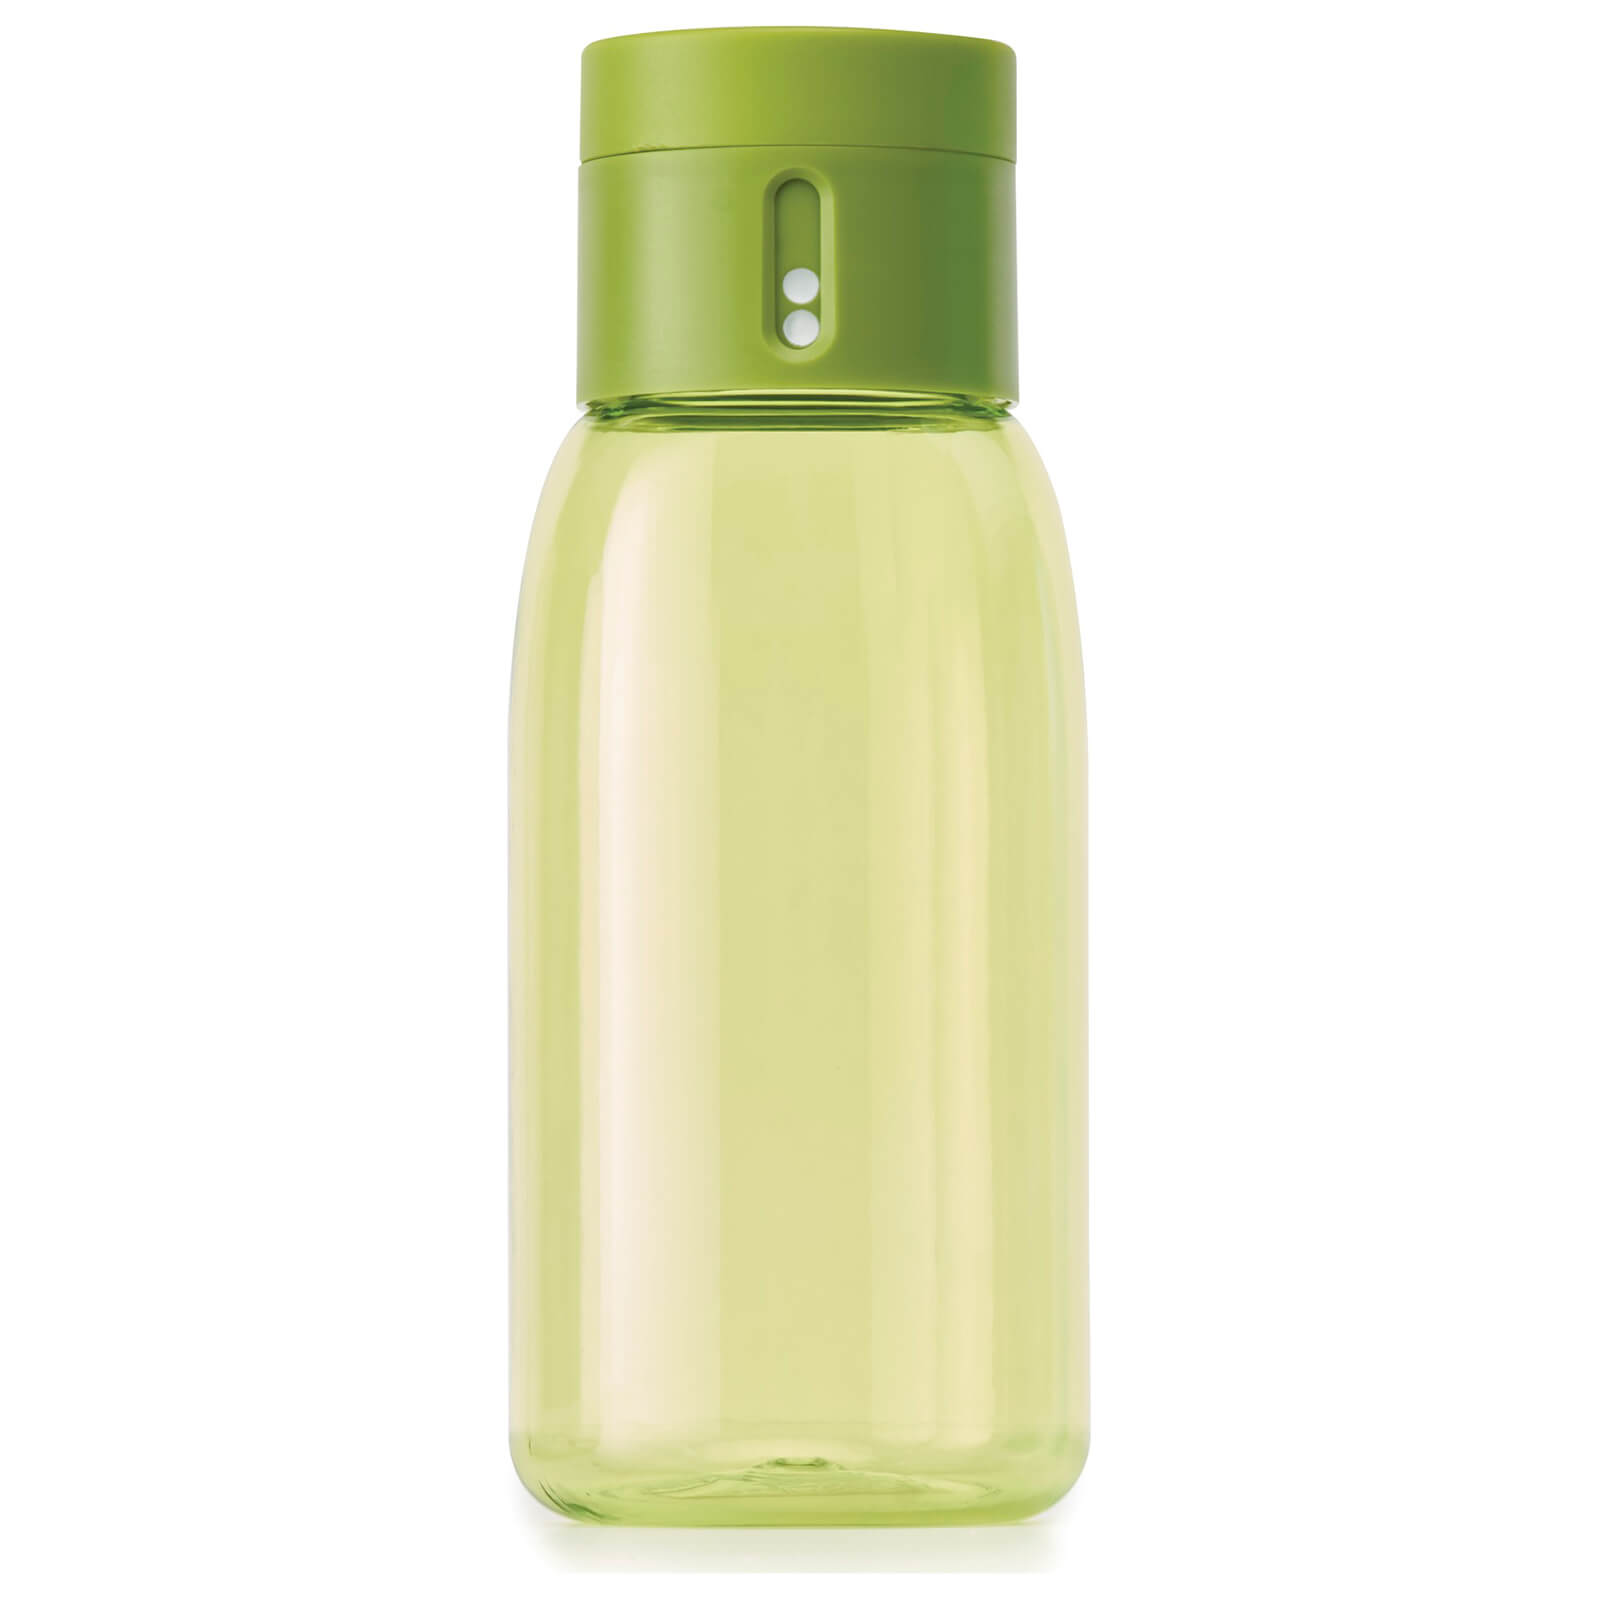 Joseph Joseph Dot Hydration-Tracking Water Bottle - Green 400ml